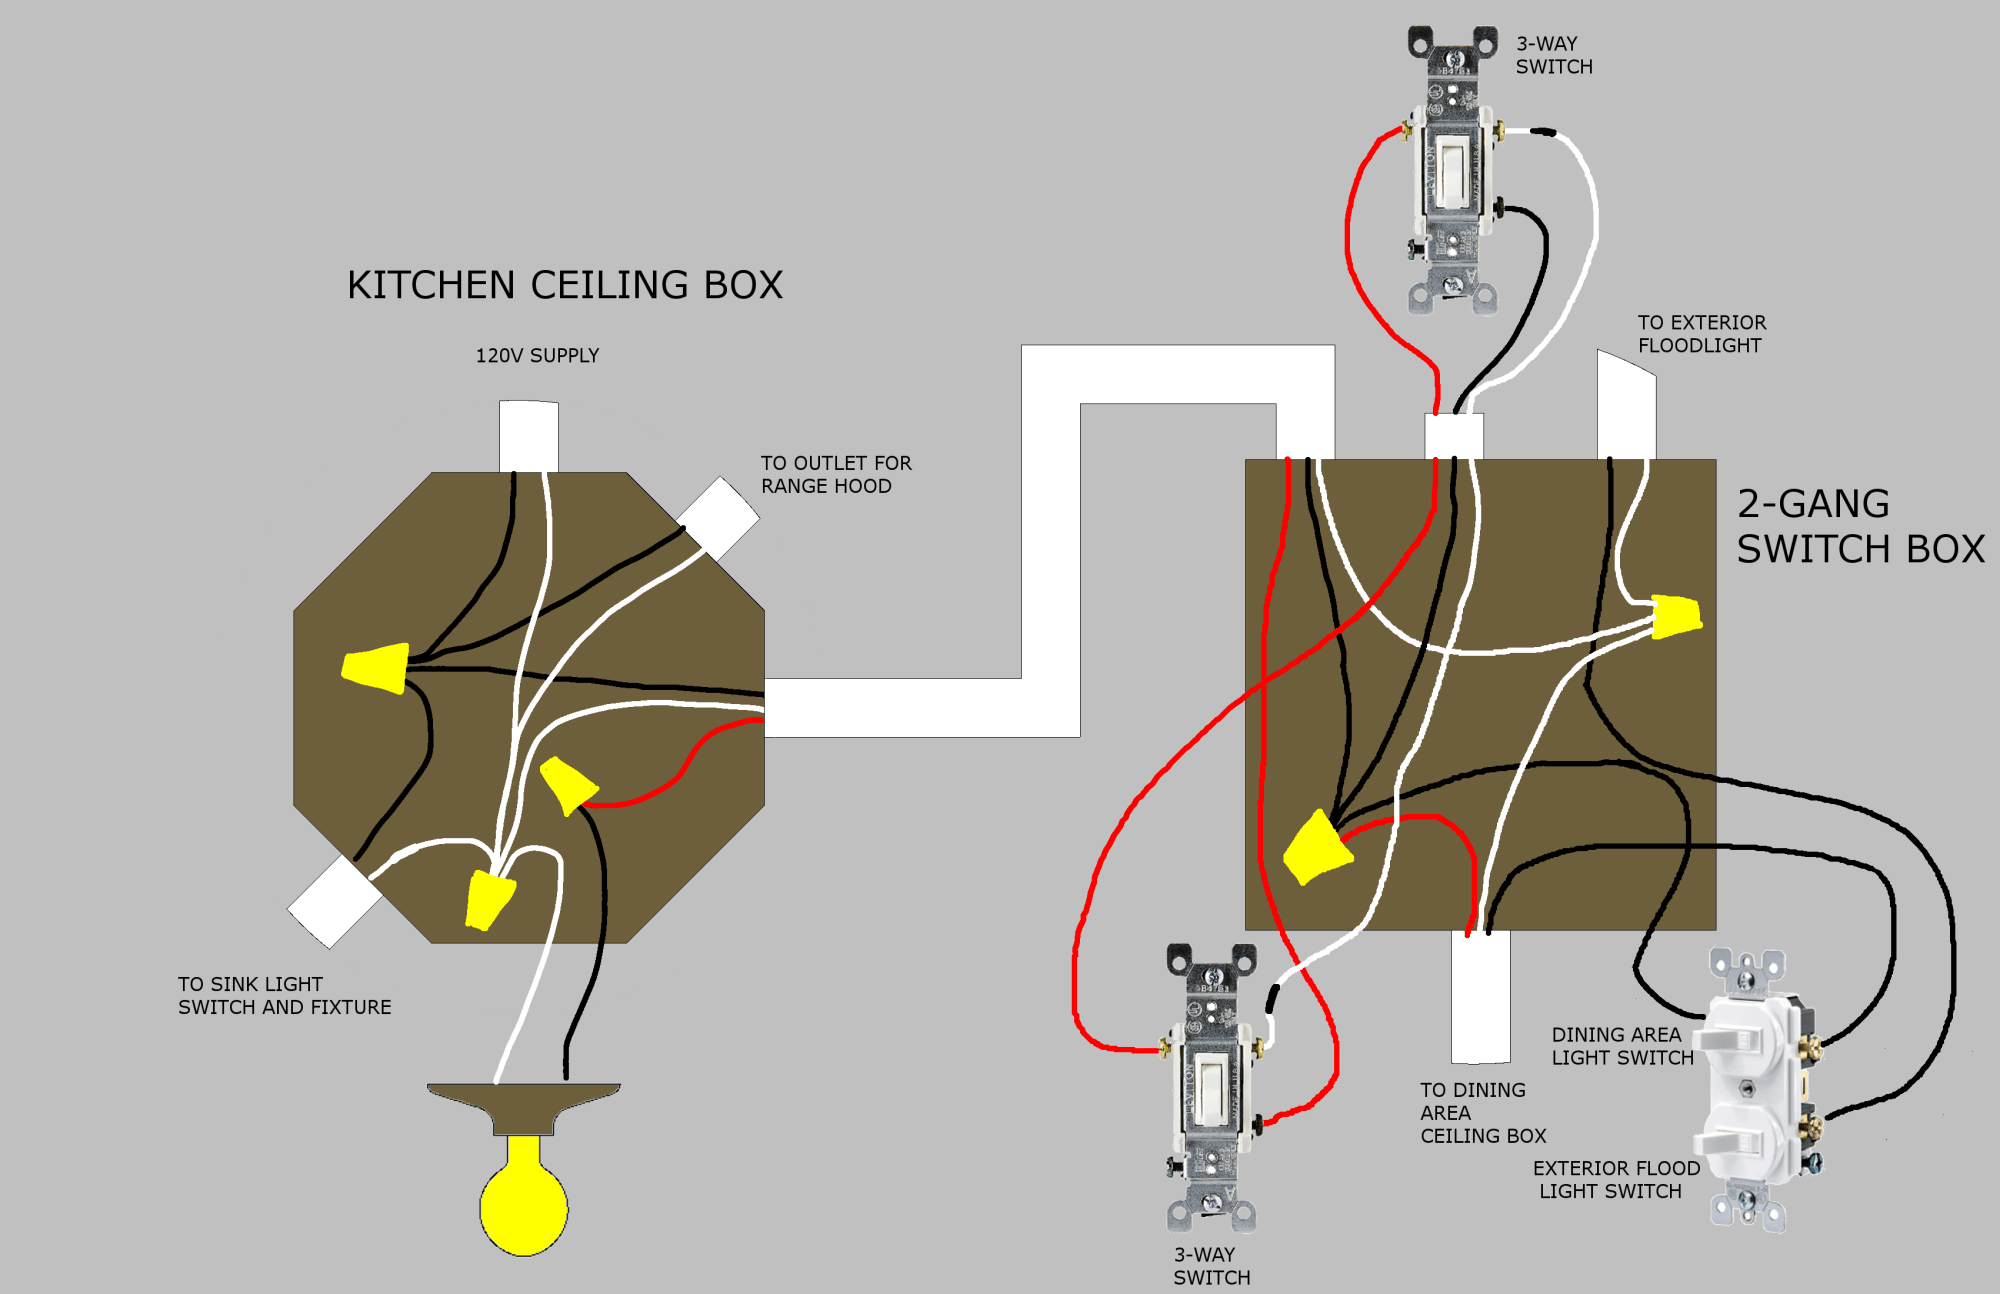 hight resolution of ceiling box wiring wiring diagrams bib ceiling junction box wiring diagram ceiling box wiring